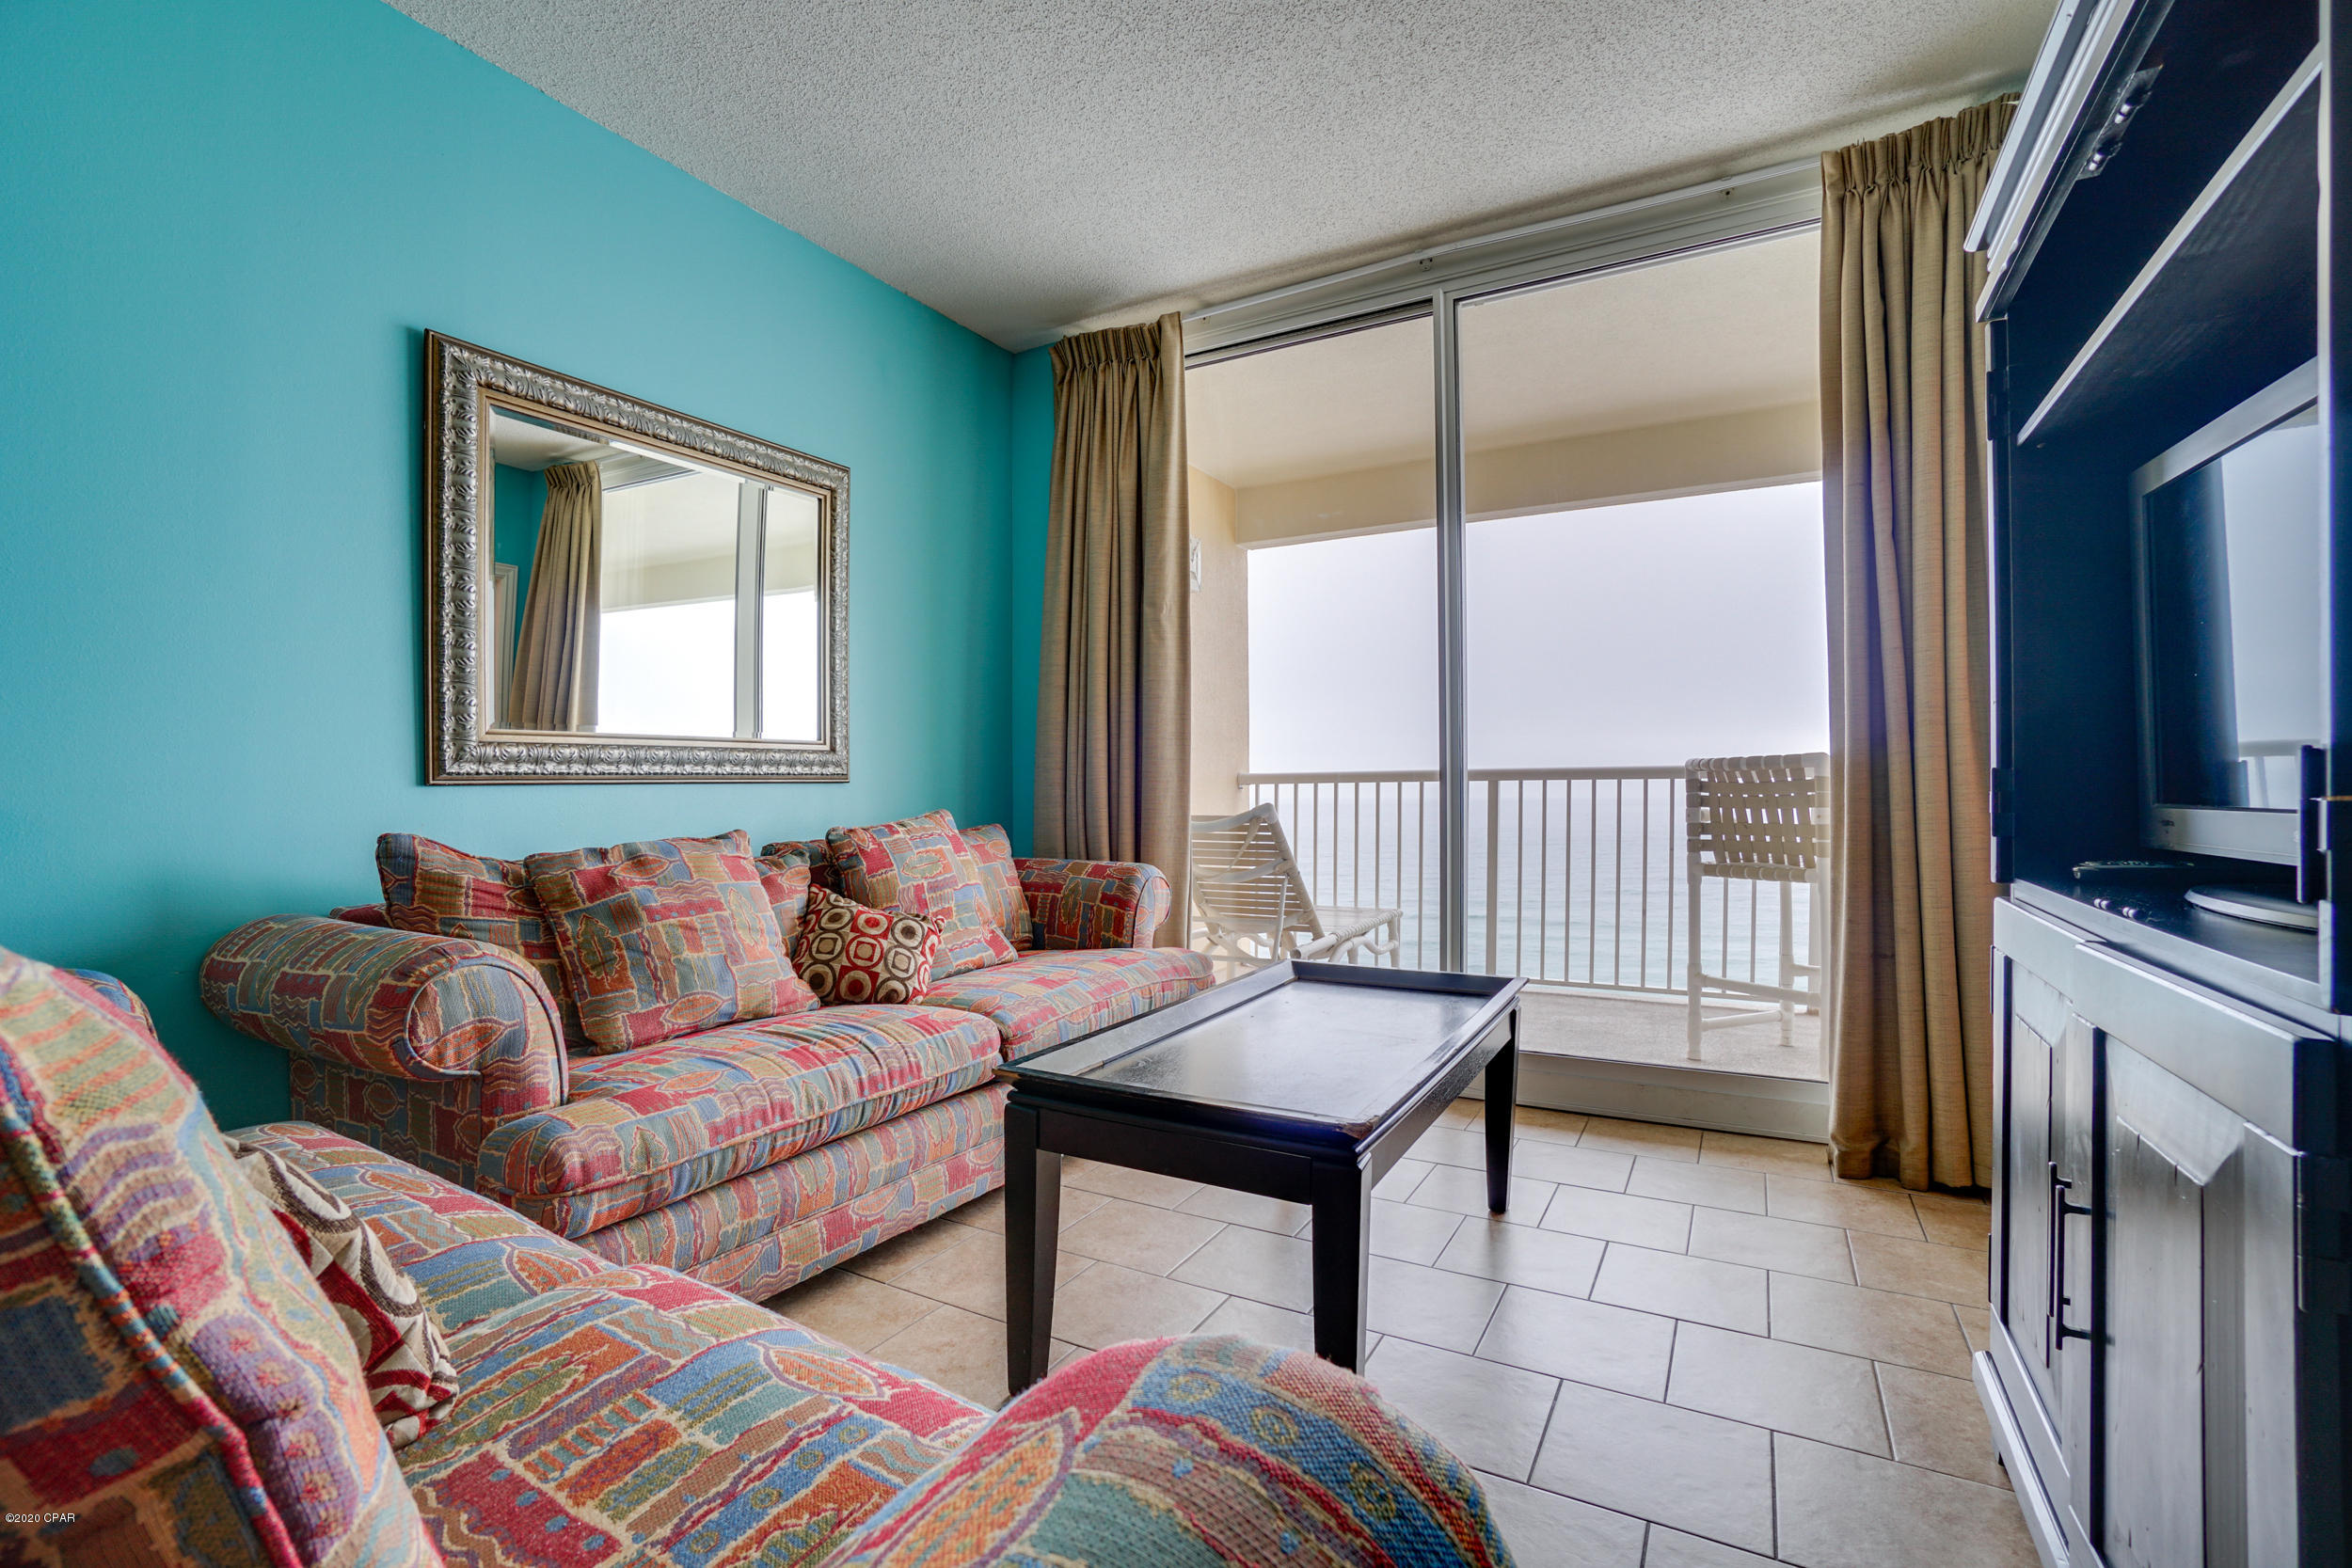 A 3 Bedroom 2 Bedroom Majestic Beach Tower Ii Condominium